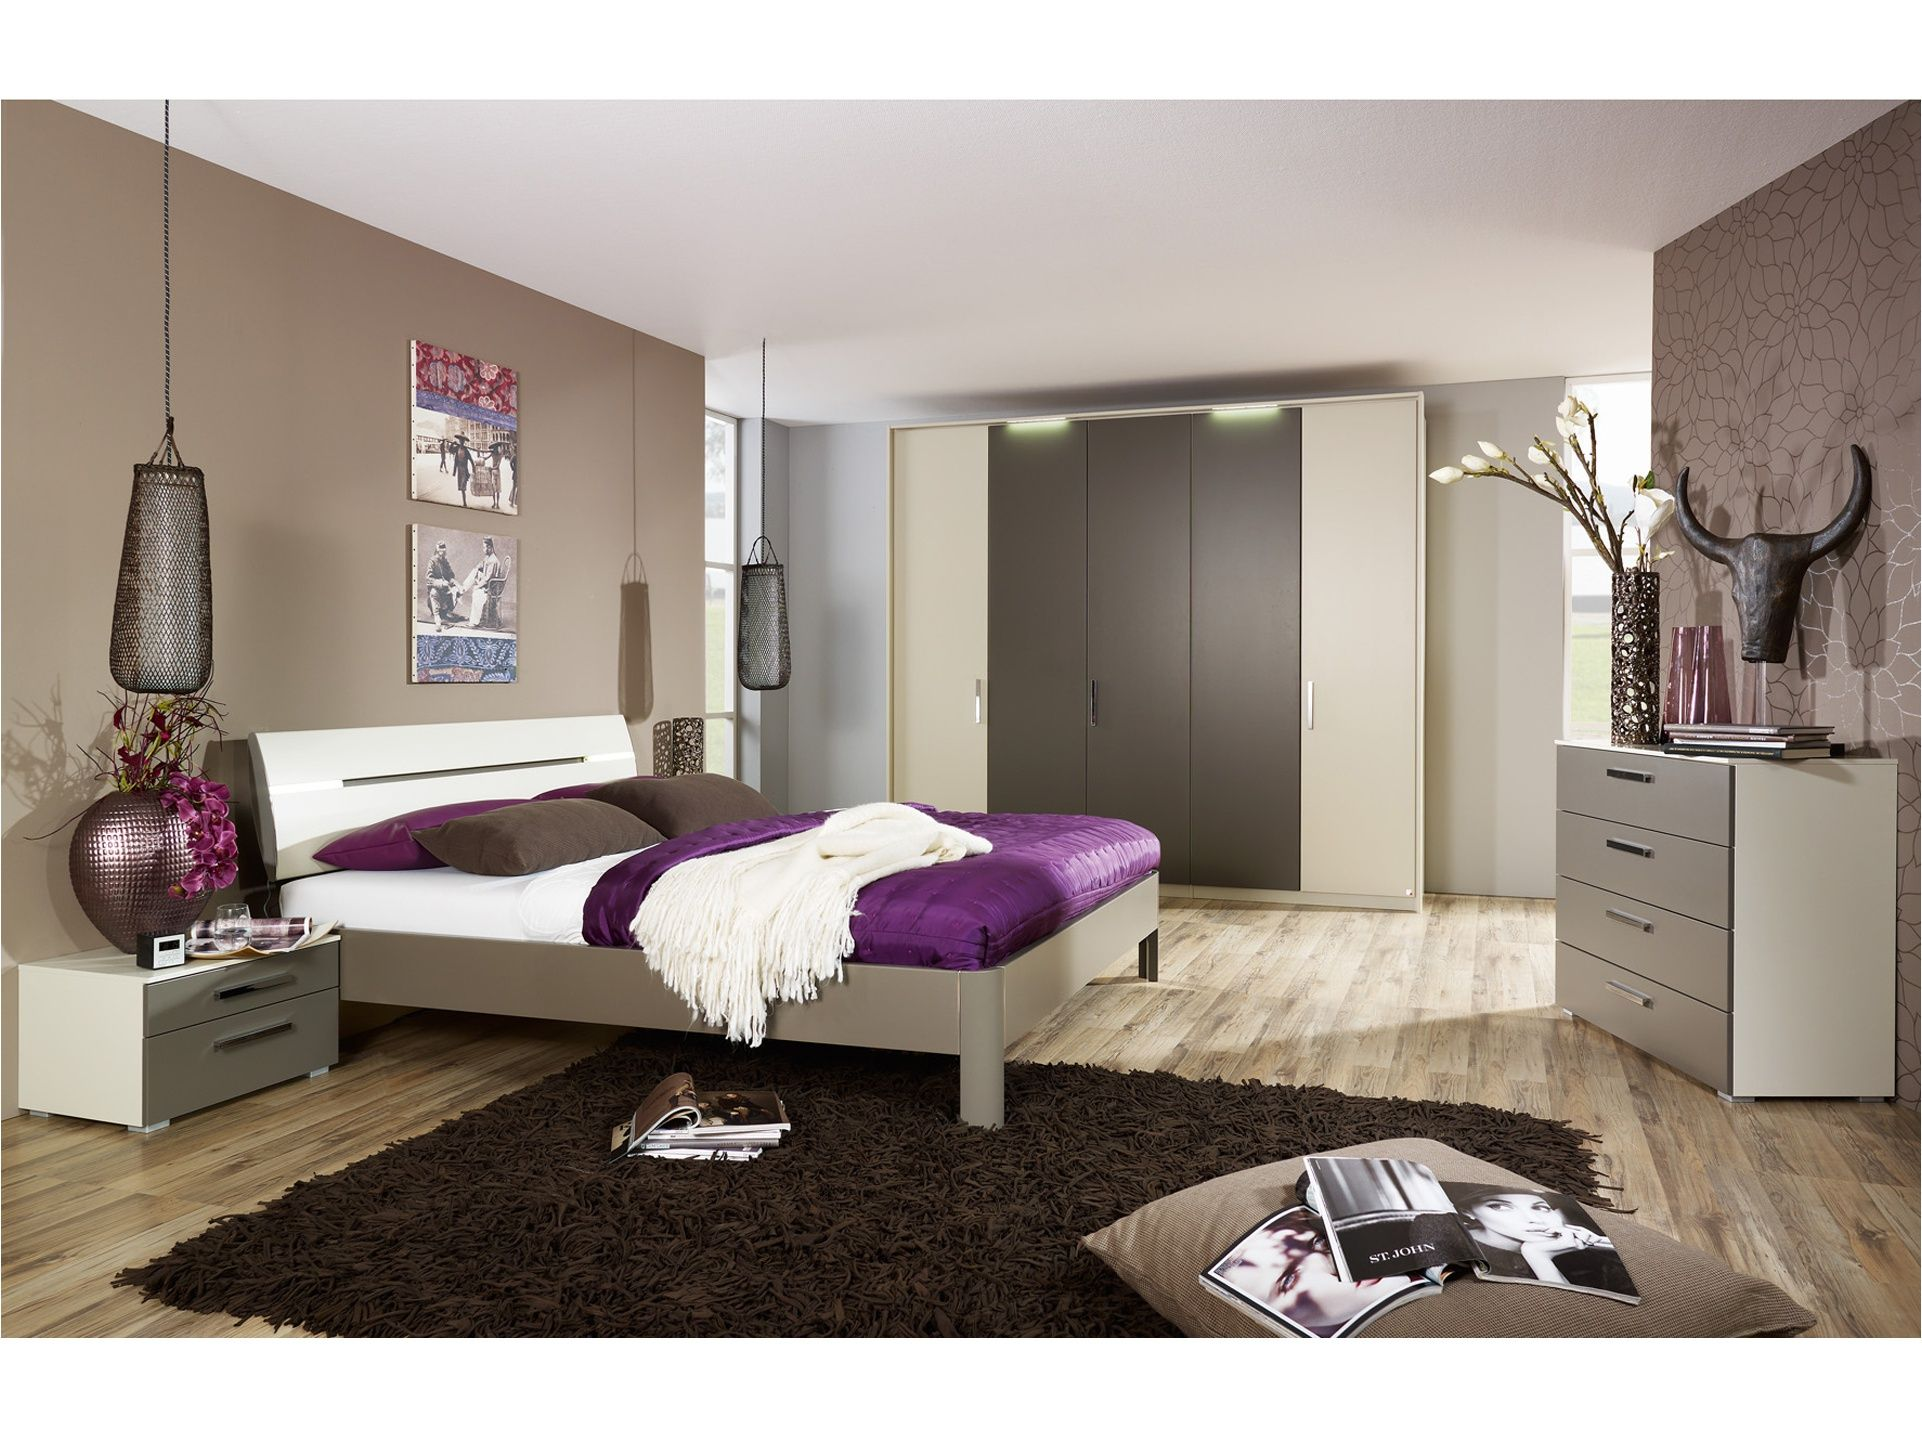 Chambre coucher adulte moderne deco pinterest for Papier peint chambre adulte contemporaine